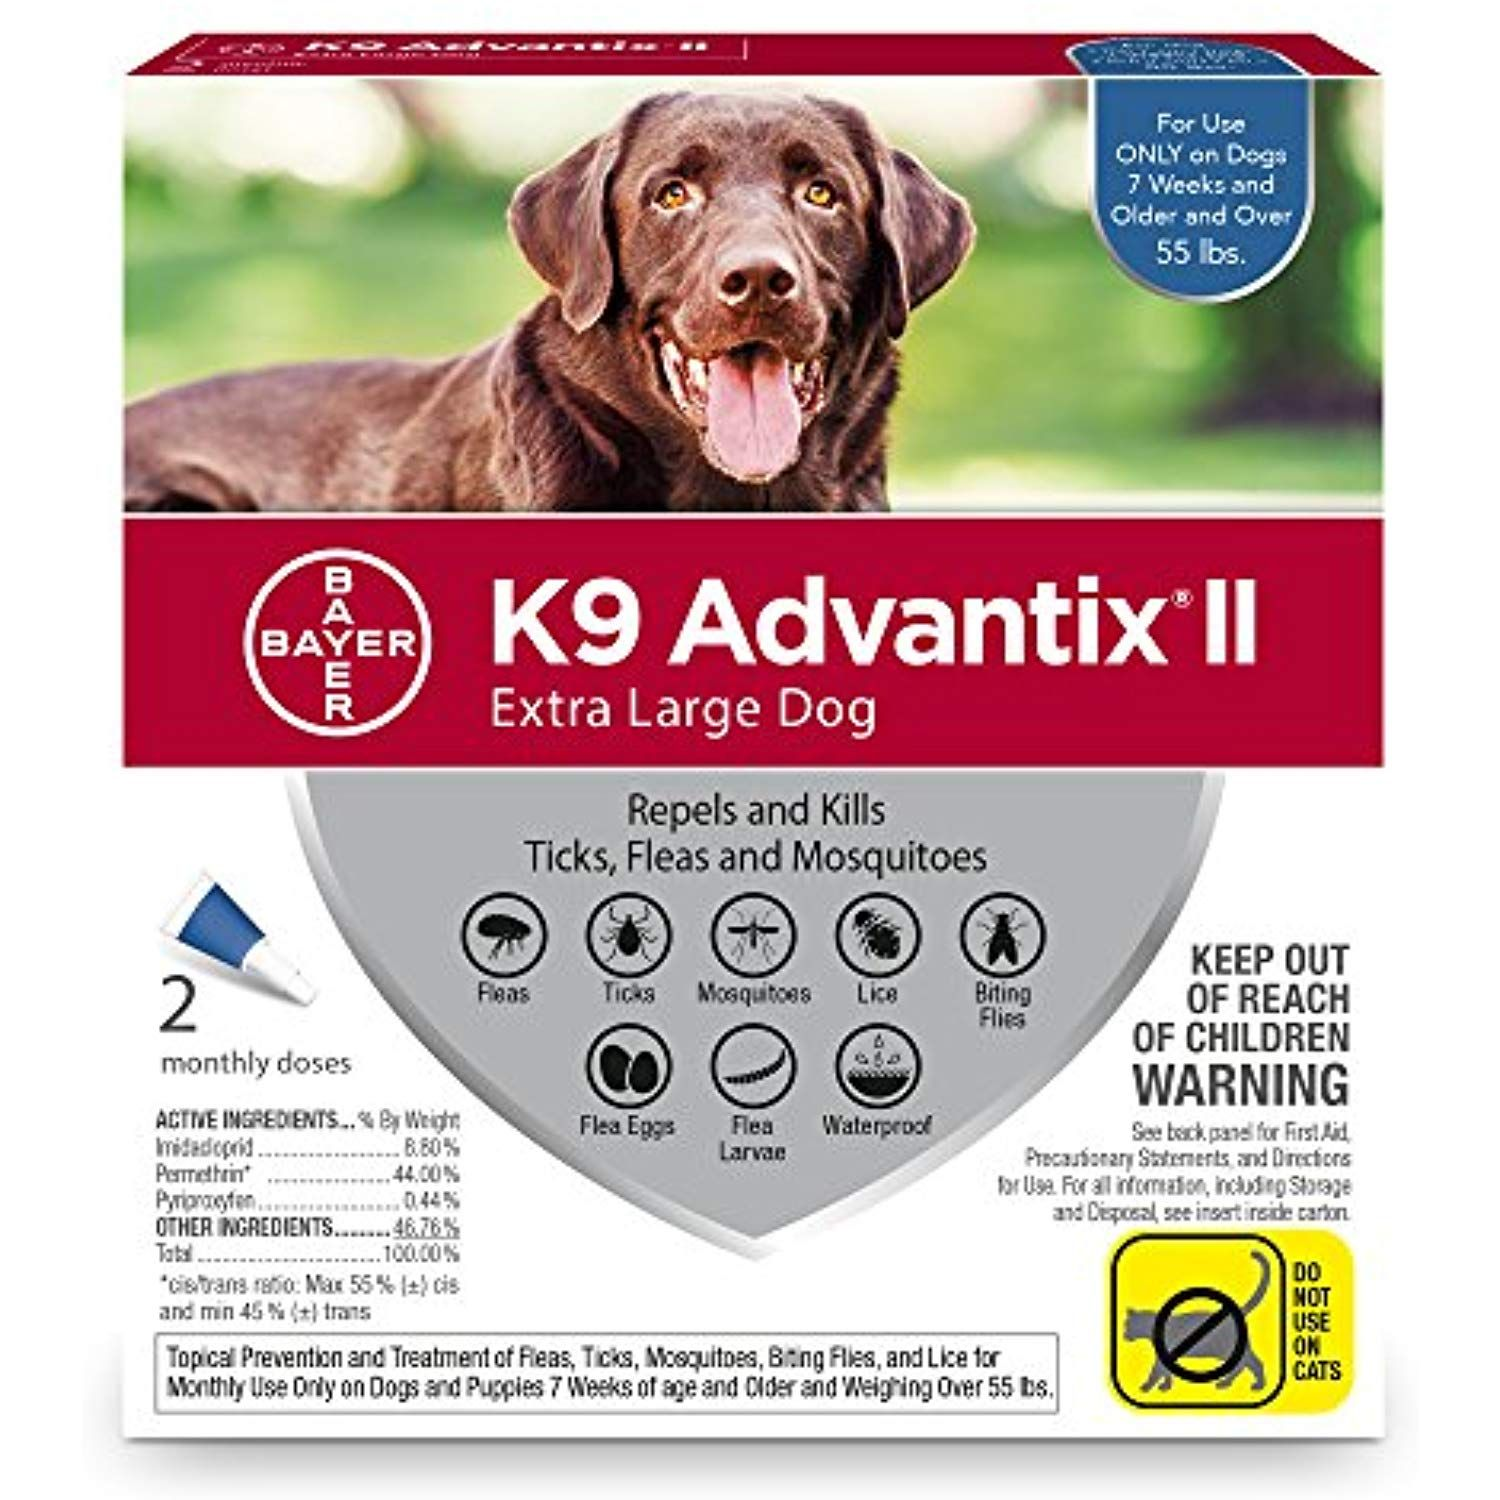 Bayer K9 Advantix Ii Flea Tick And Mosquito Prevention For Xlarge Dogs Over 55 Lbs 2 Doses See This Great Product Th Tick Treatment Fleas Flea And Tick